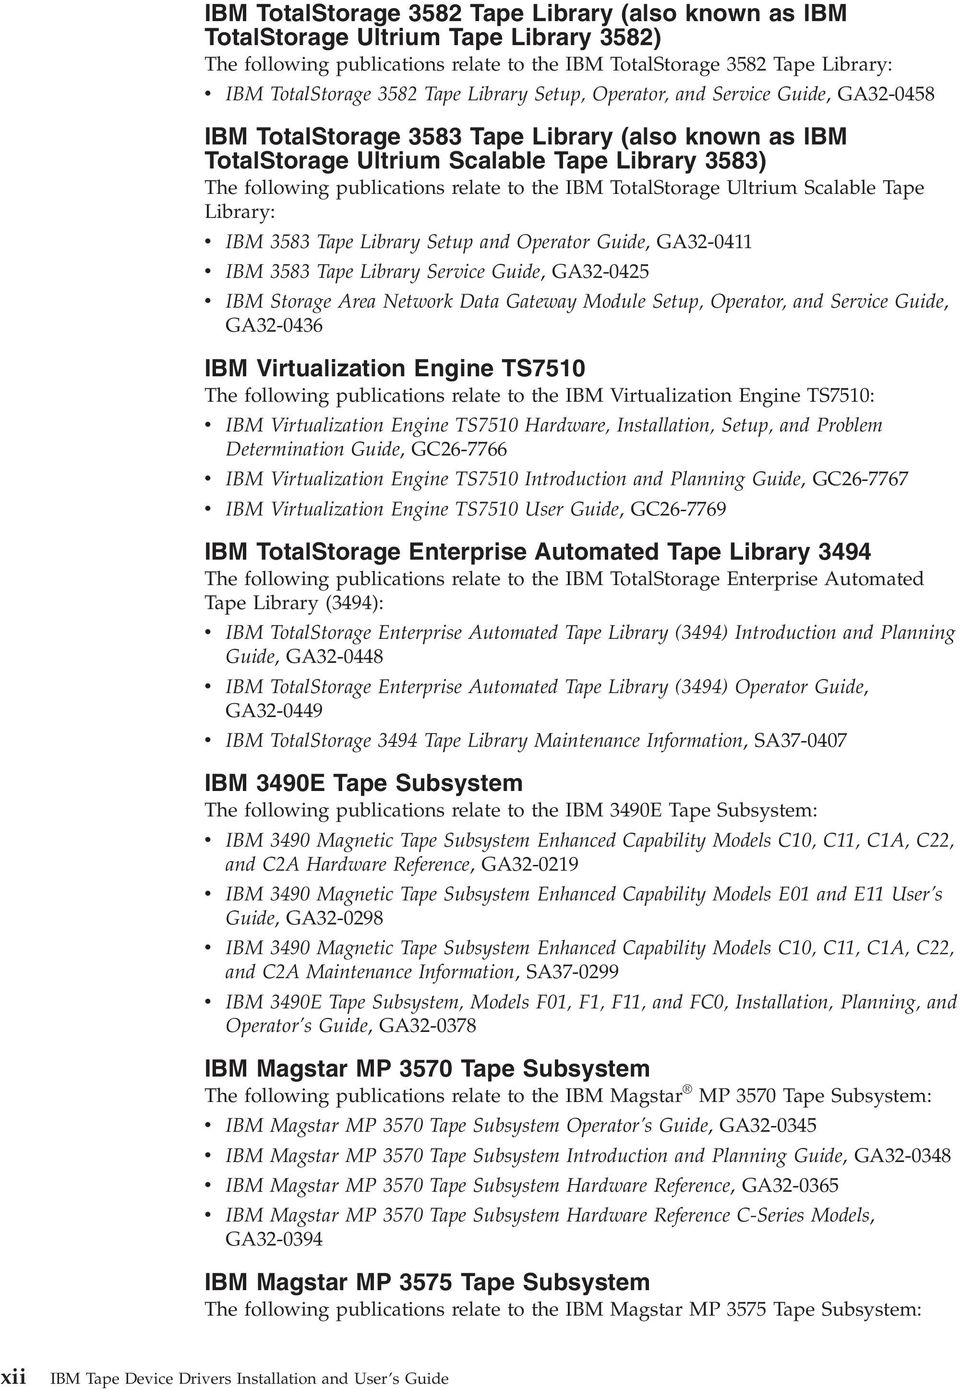 ibm tape device drivers users guide